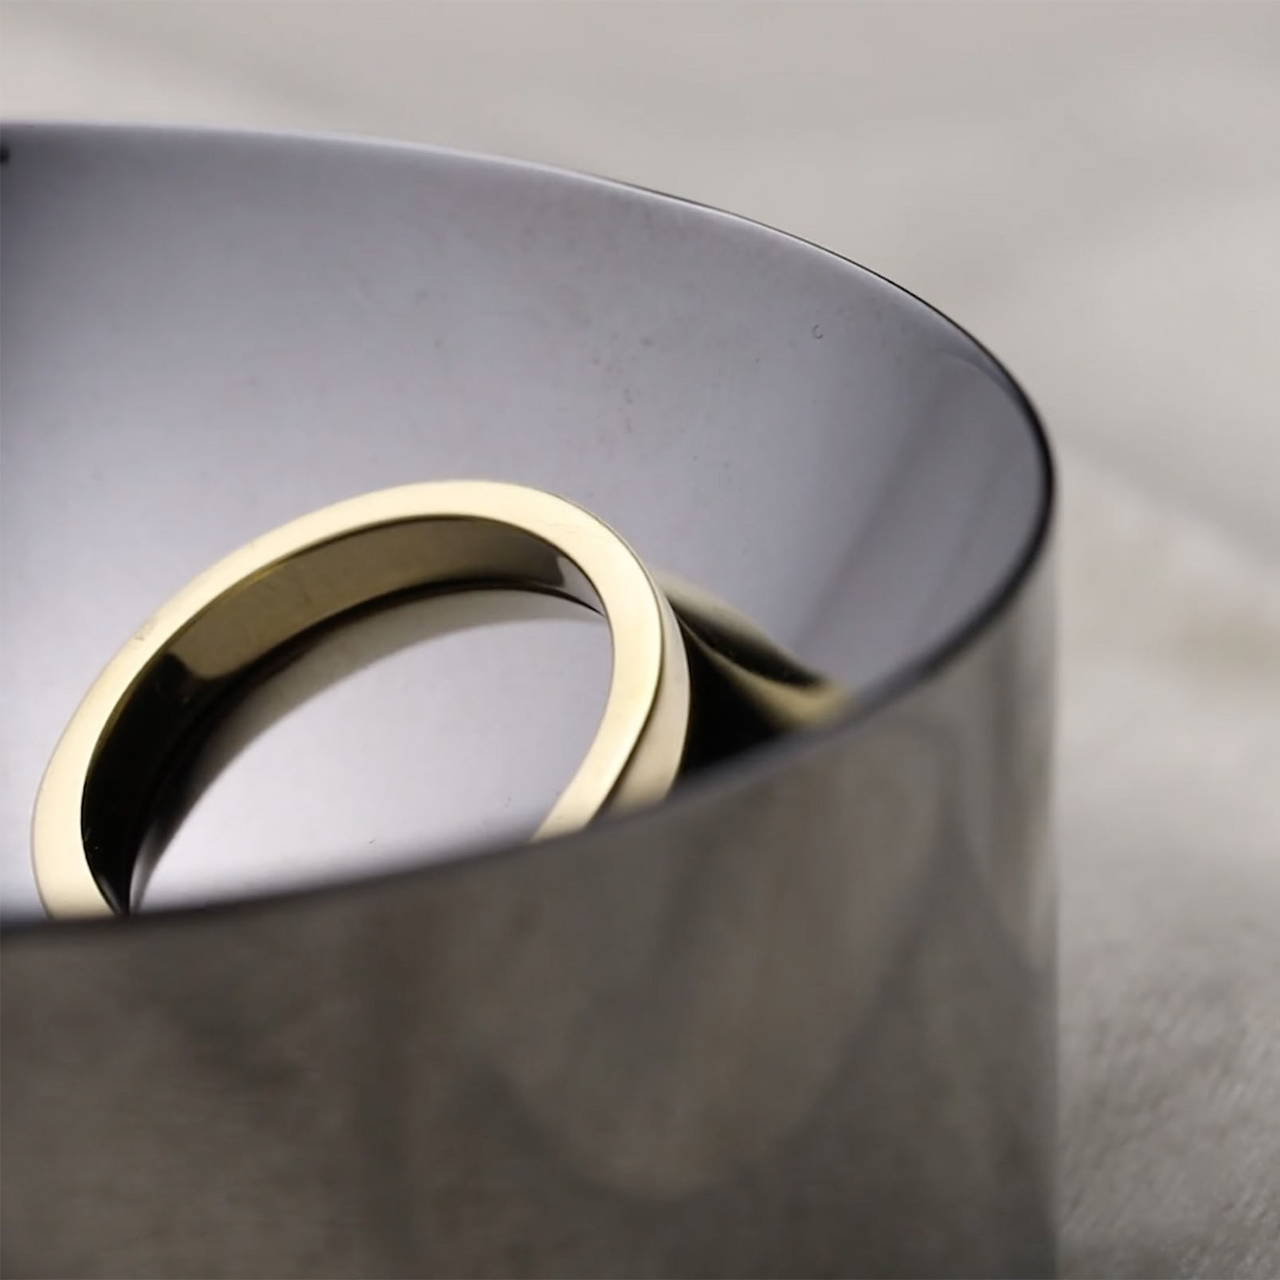 Black Nickel Dish 60 with Round Ring